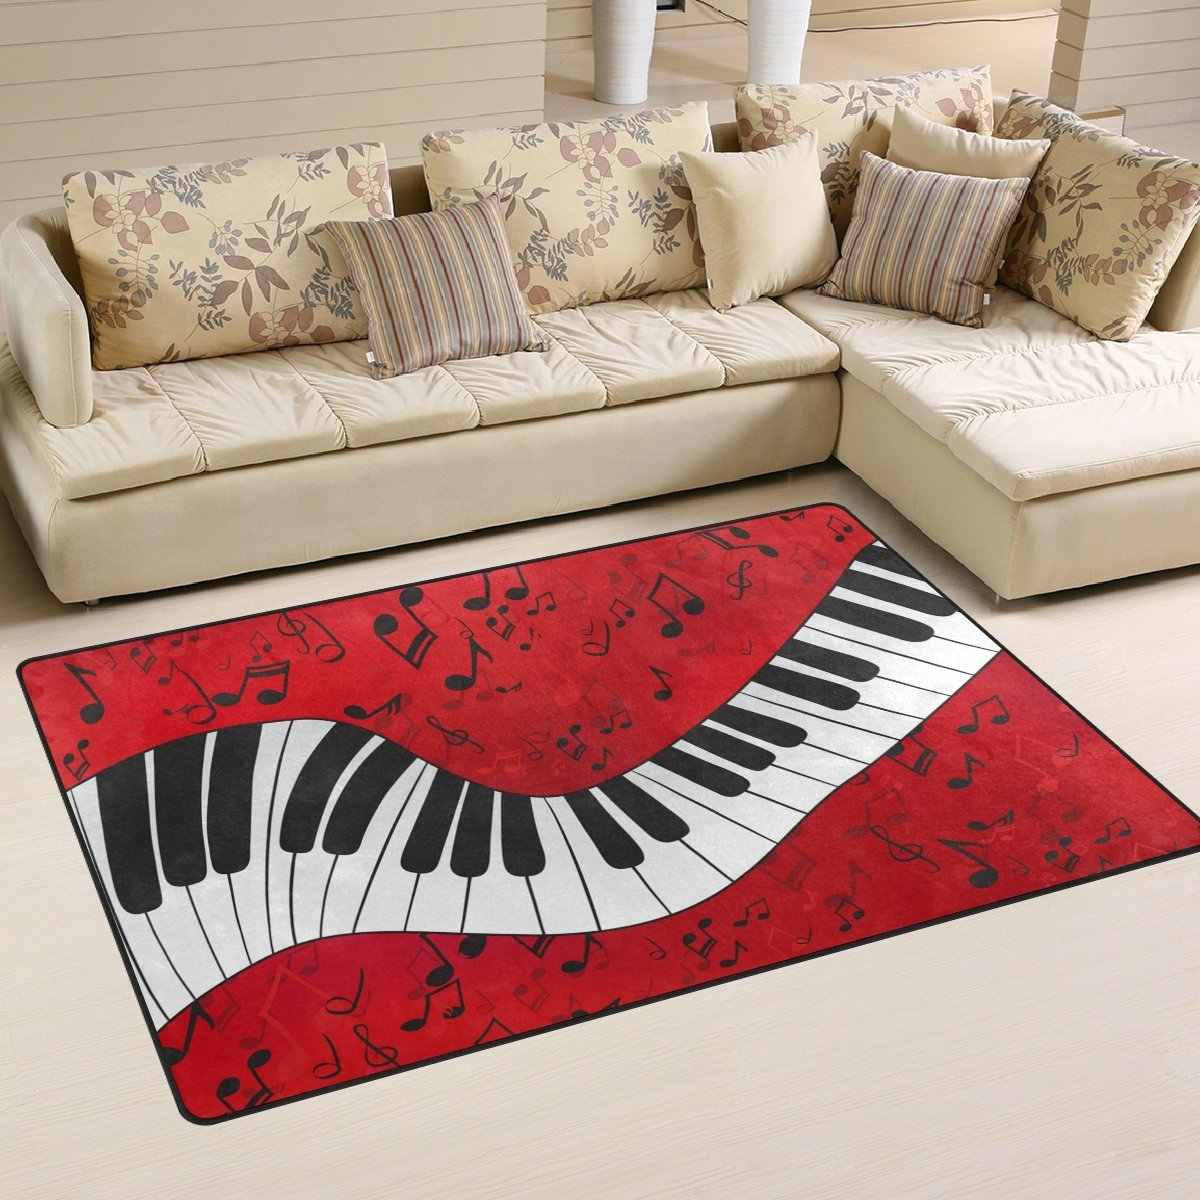 Music Theme Colorful Rug Thewowdecor